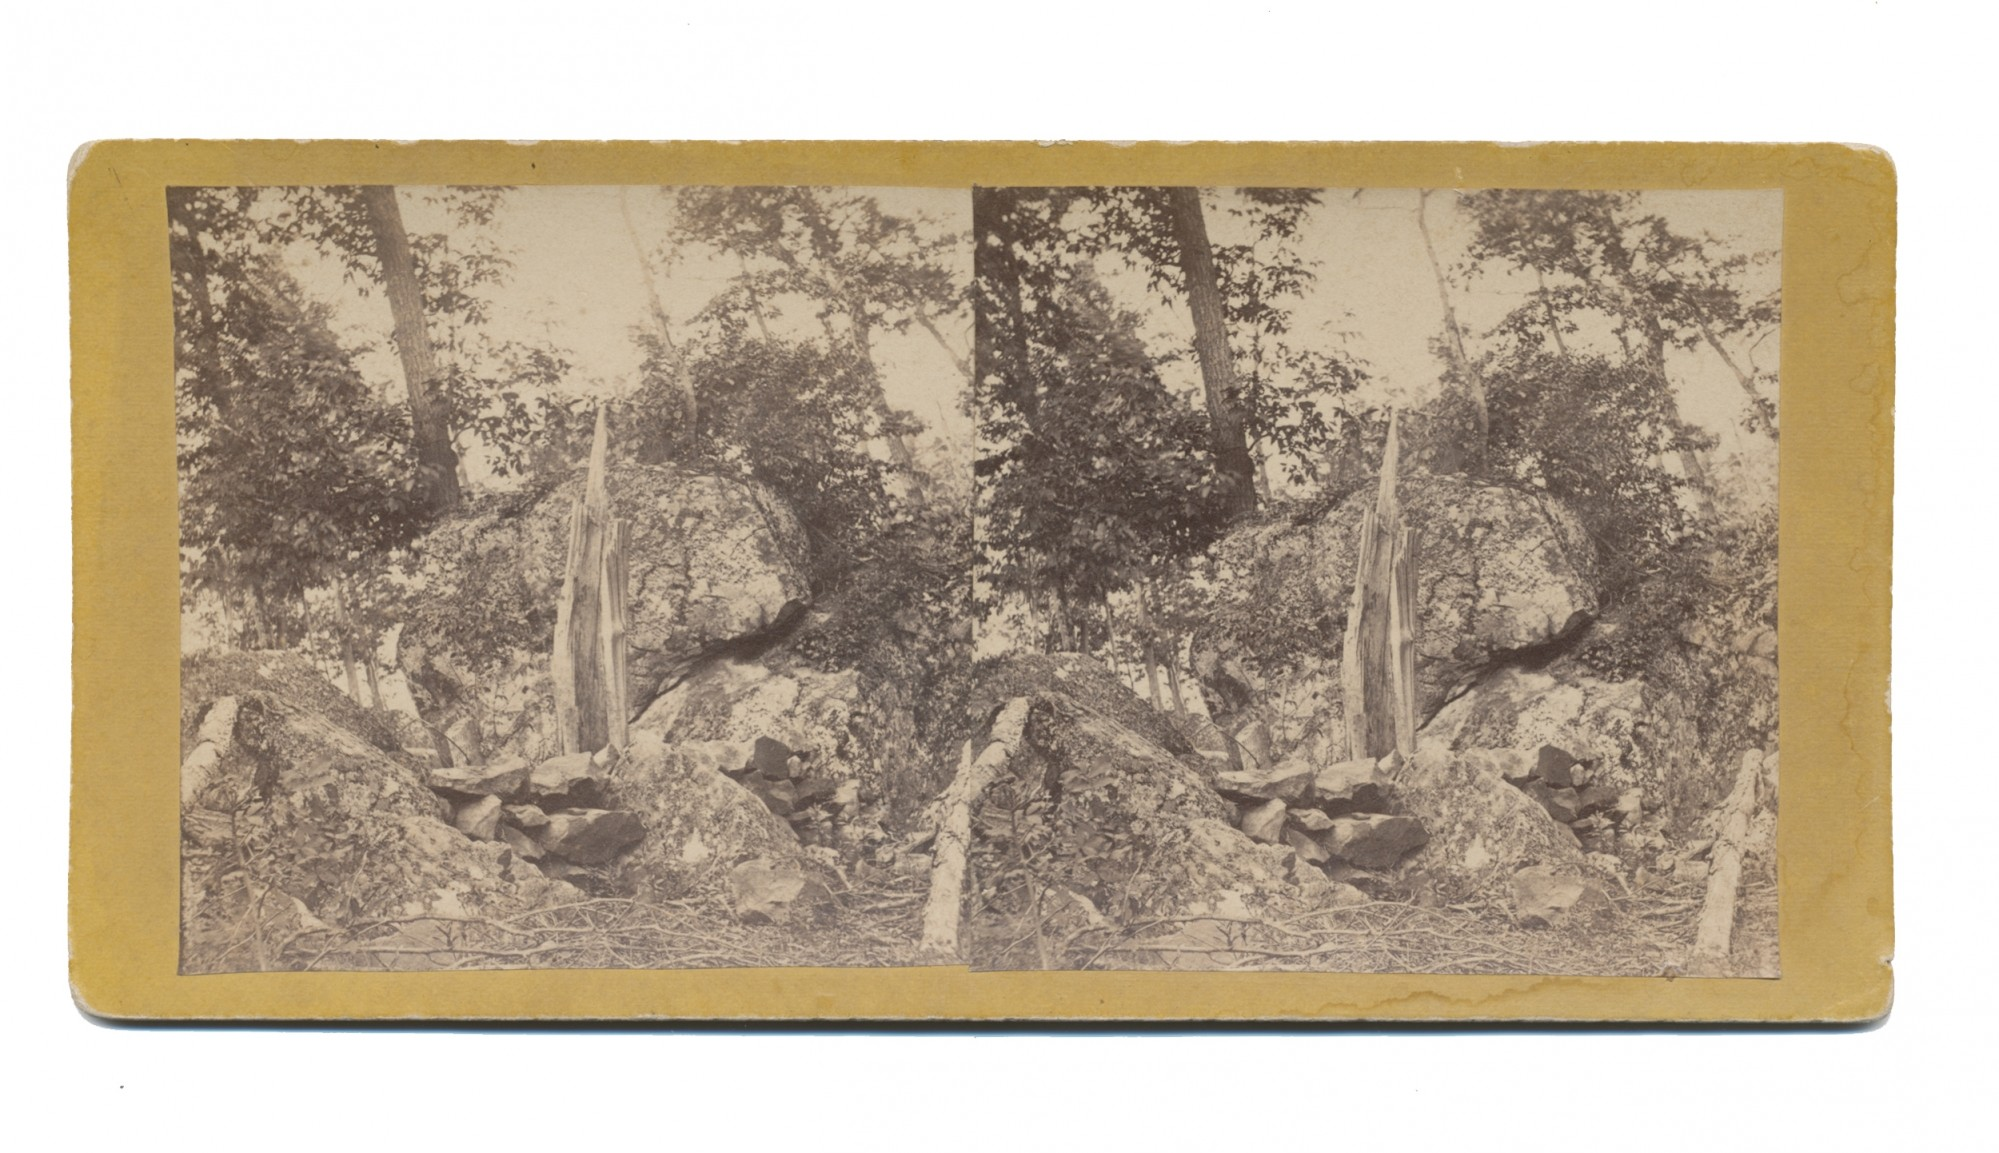 TYSON STEREO VIEW OF CULP'S HILL AT GETTYSBURG